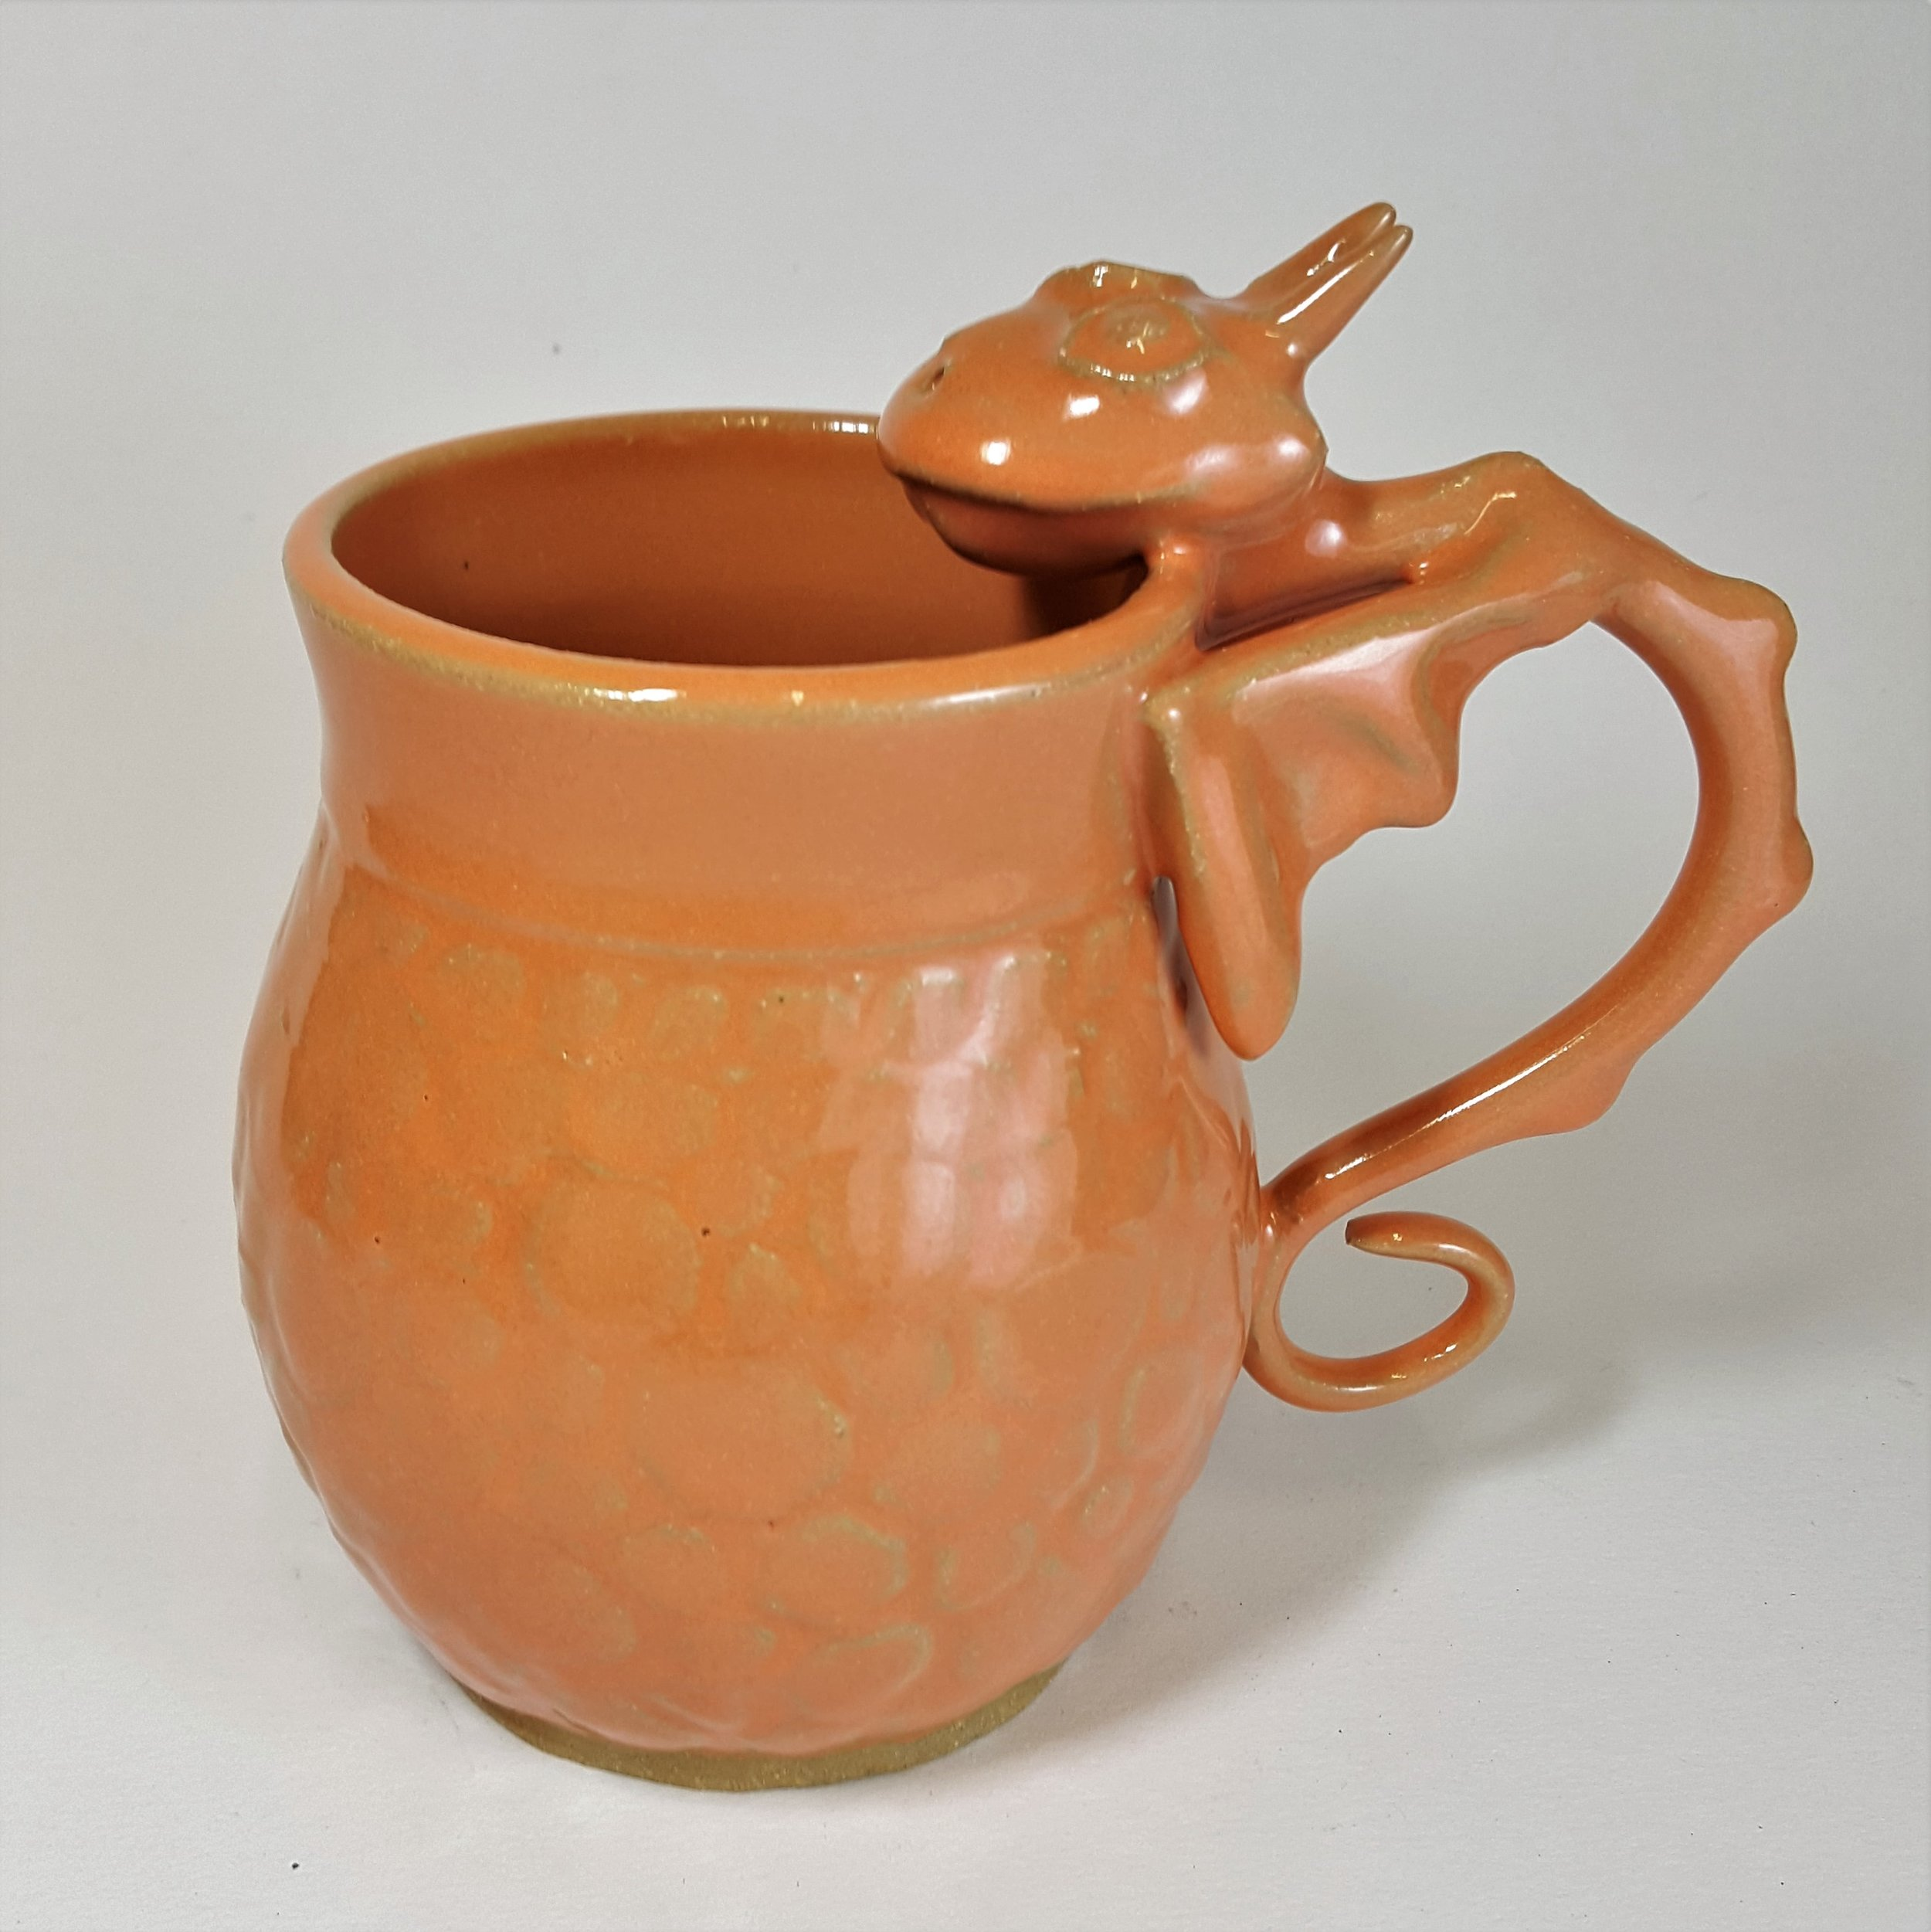 SPECIAL EDITION 22 oz. Orange Dragon Mug with Scale Detail - $80